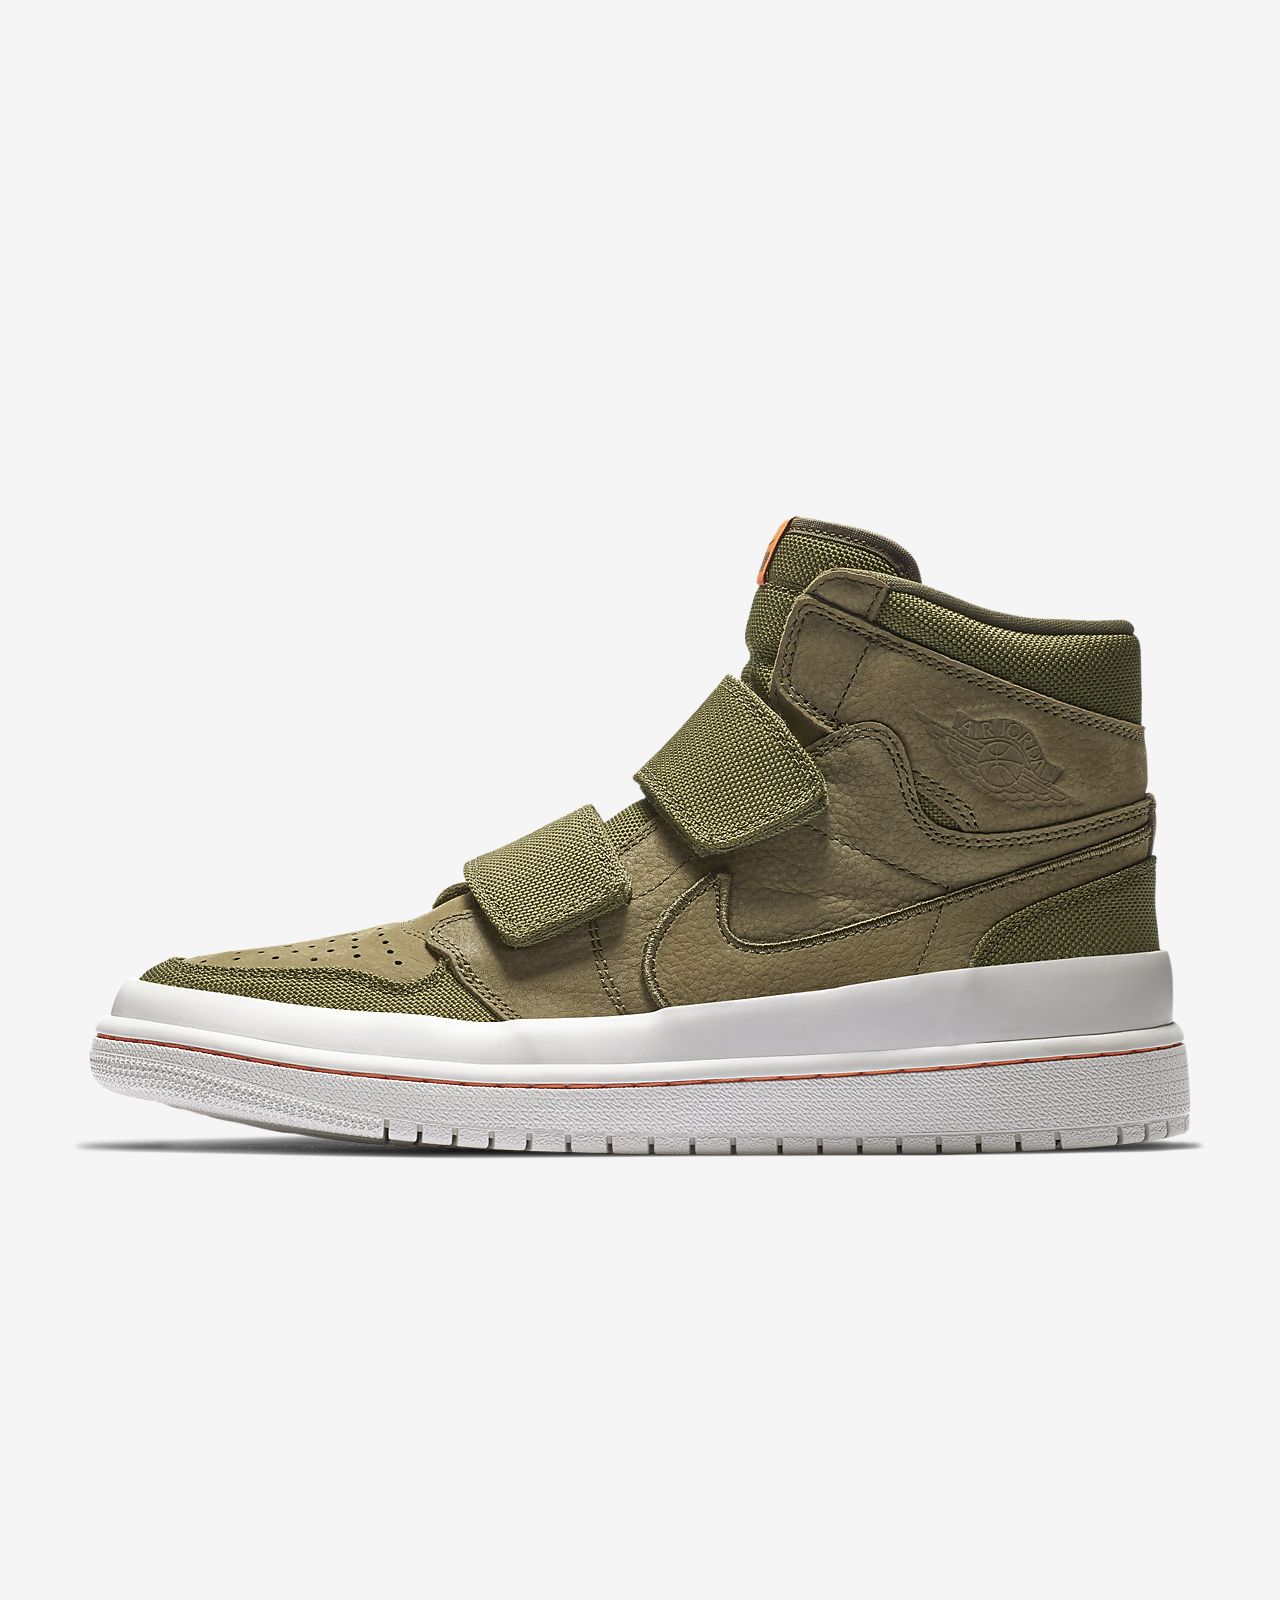 edaa5f197ca Air Jordan 1 Retro High Double Strap Men s Shoe. Nike.com